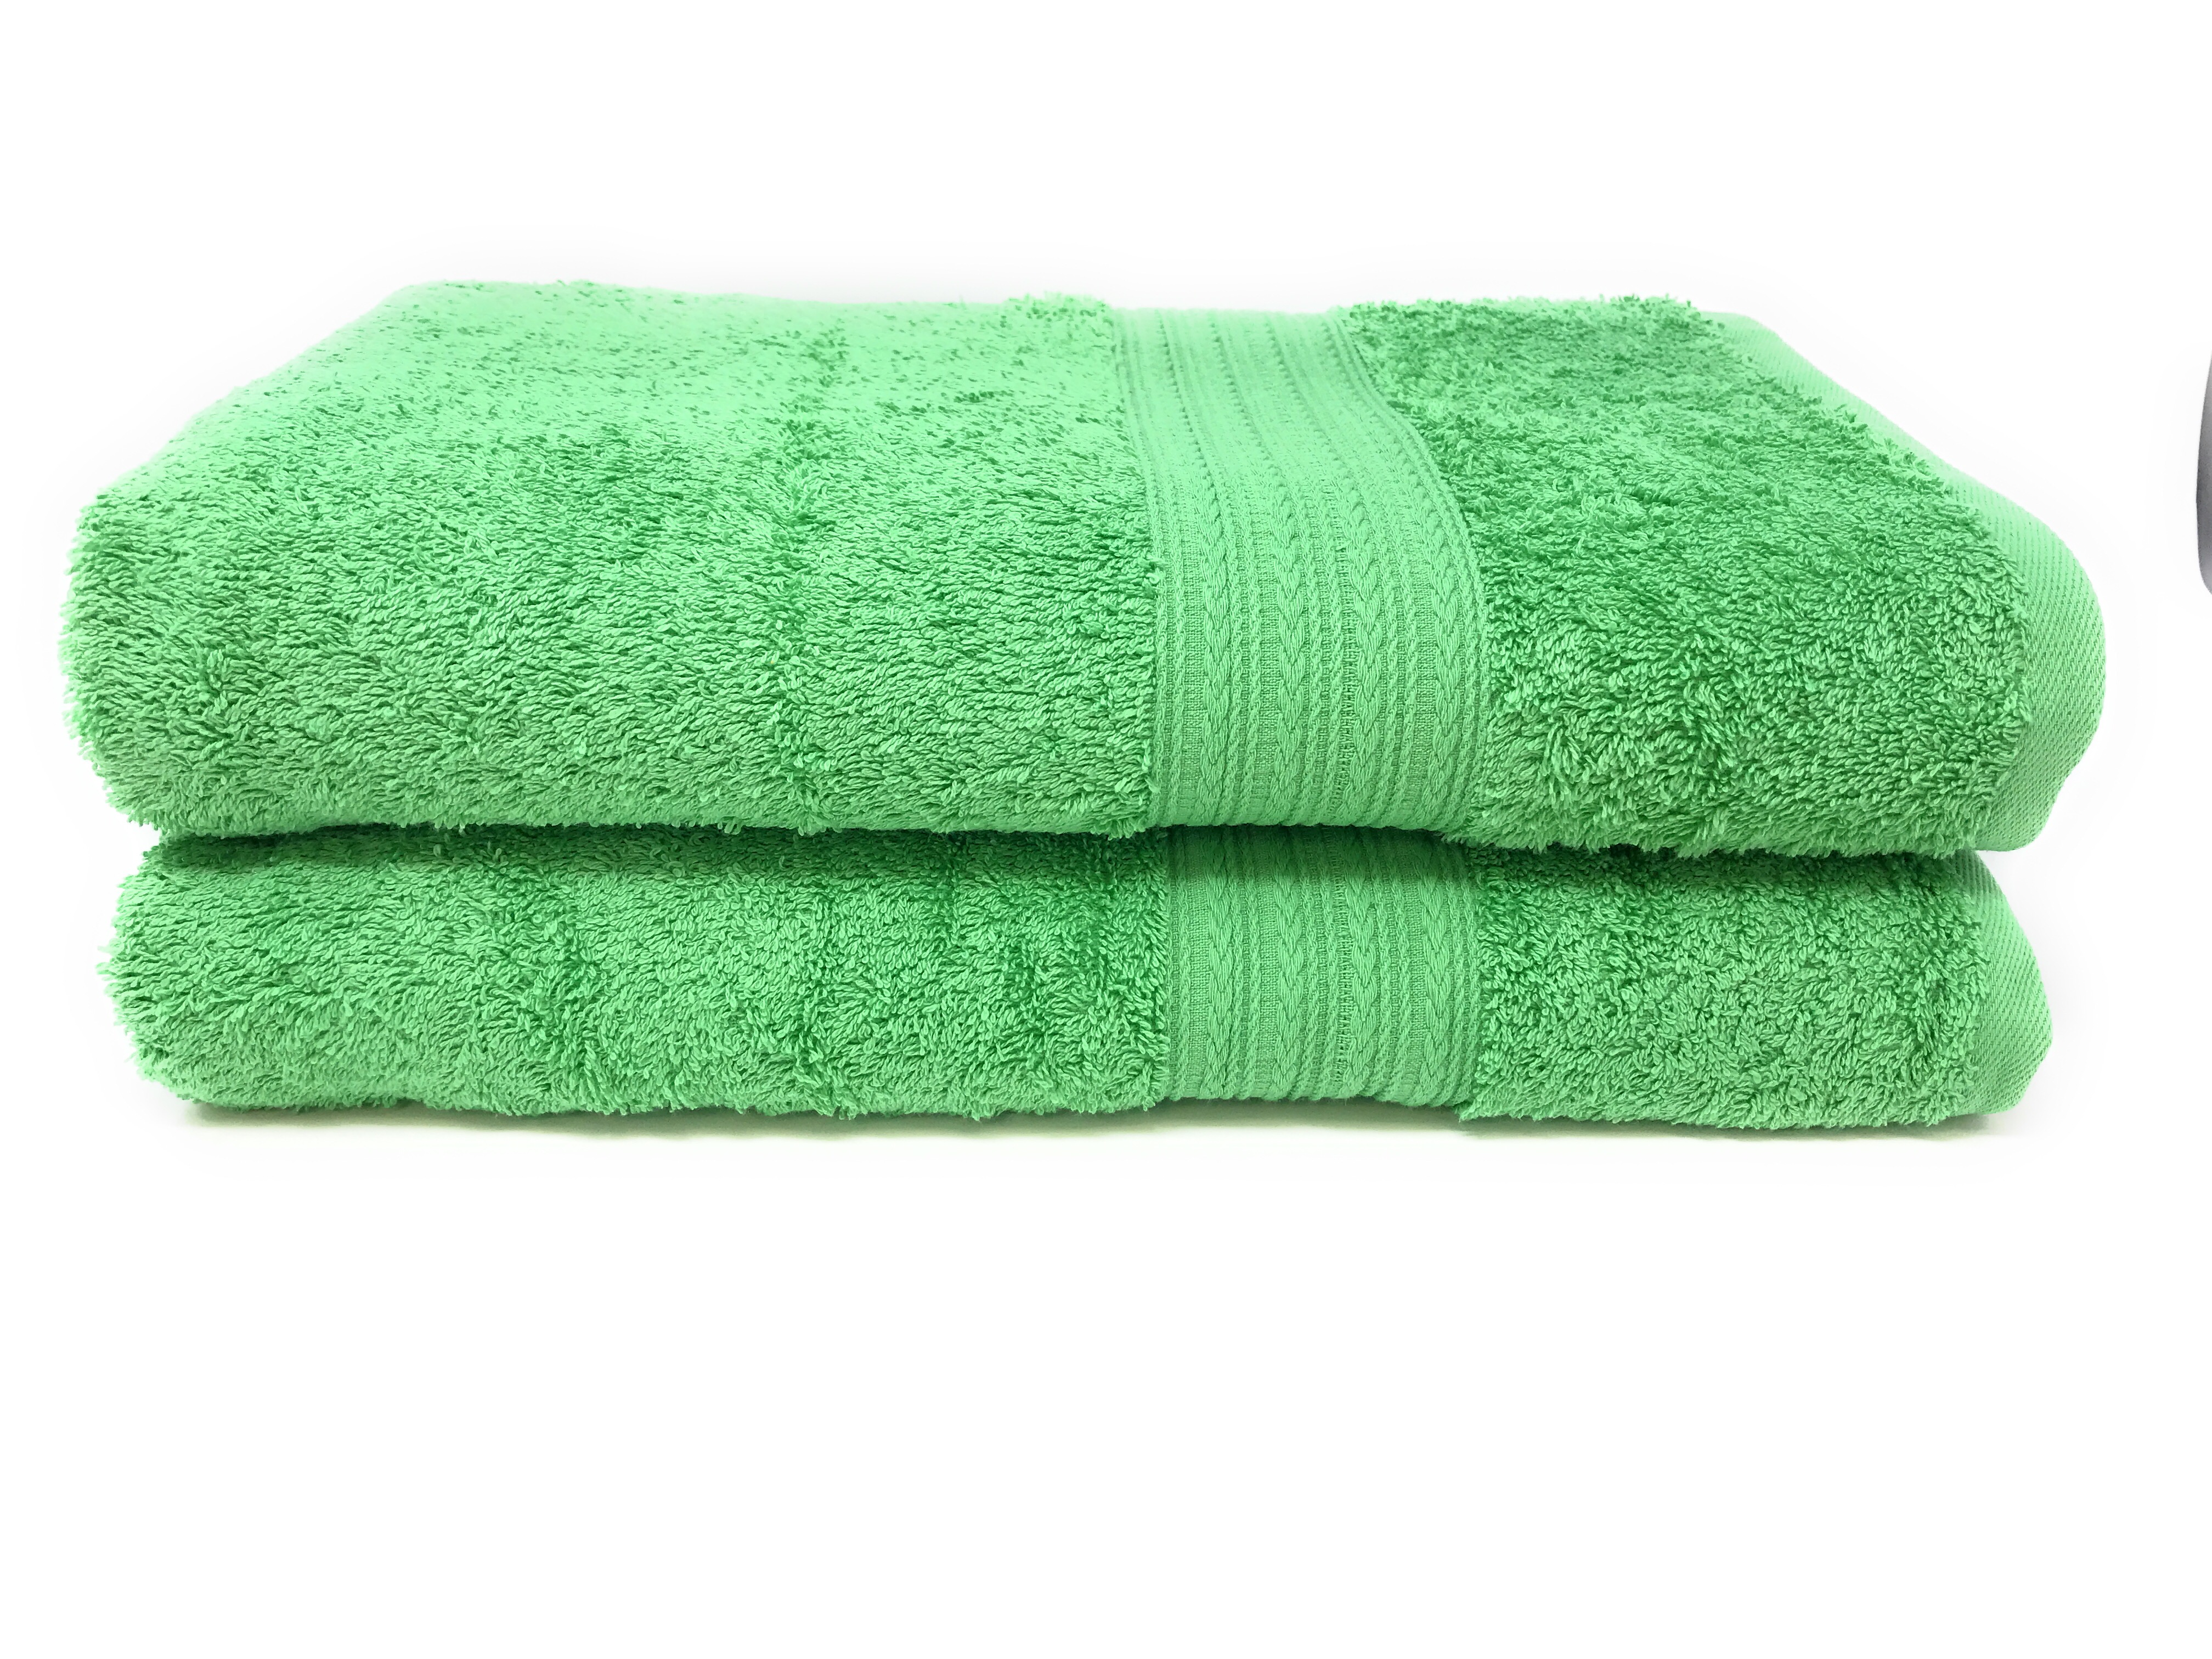 Goza Towels Cotton Bath Towels (2 Pack, 28 by 56 inches) Light Green by